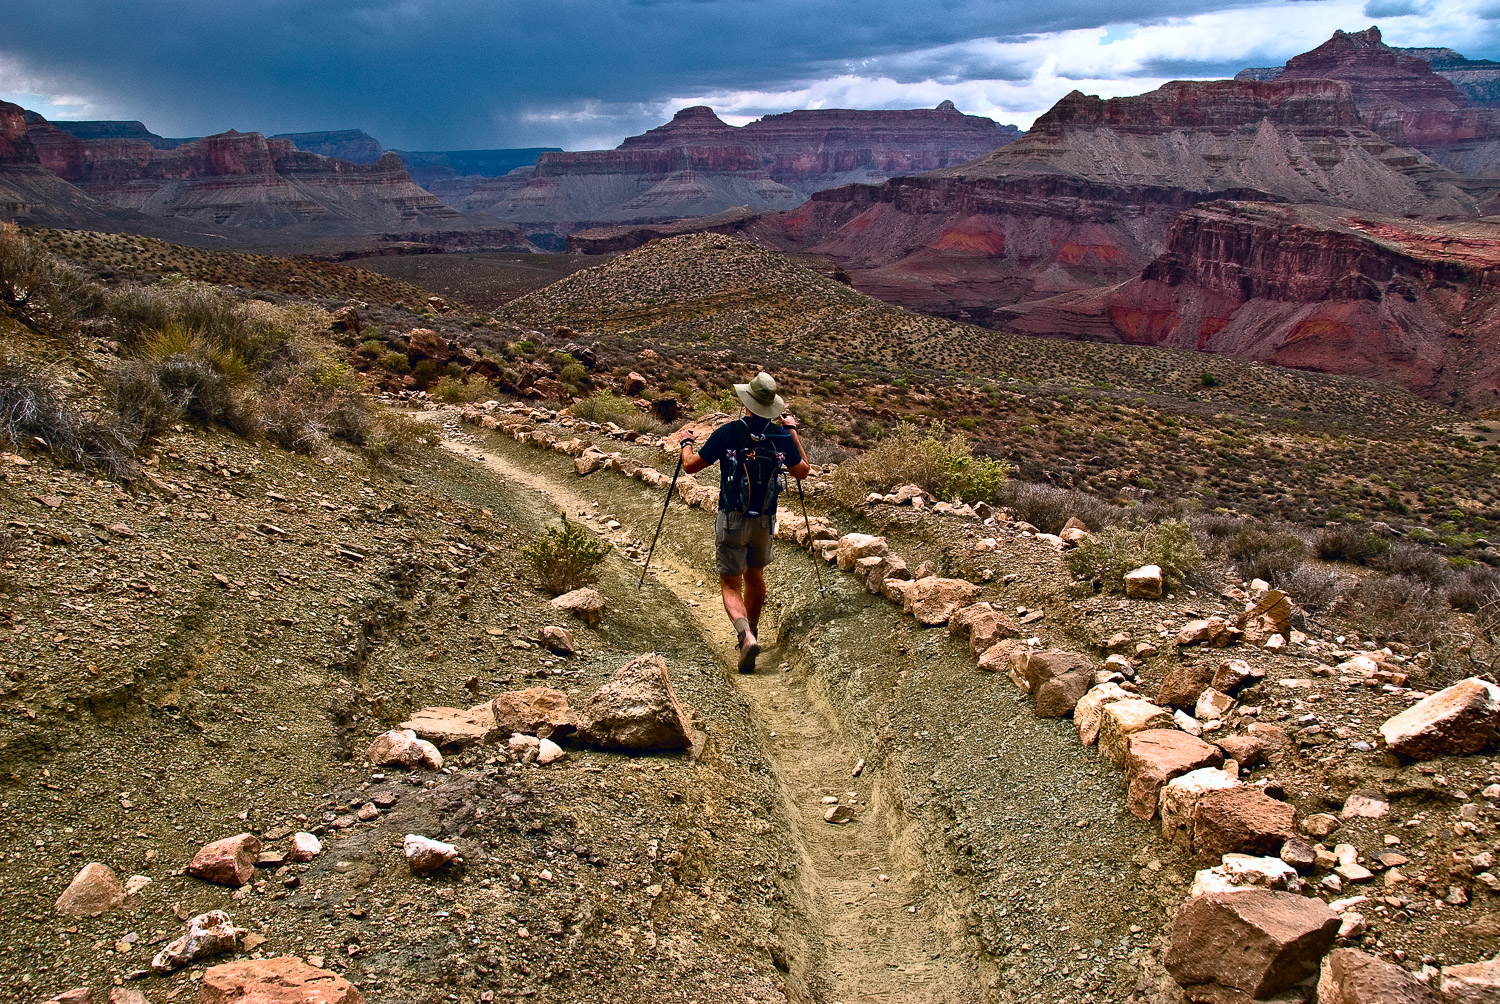 Impending Storm, South Kaibab Trail | Mark Lindsay